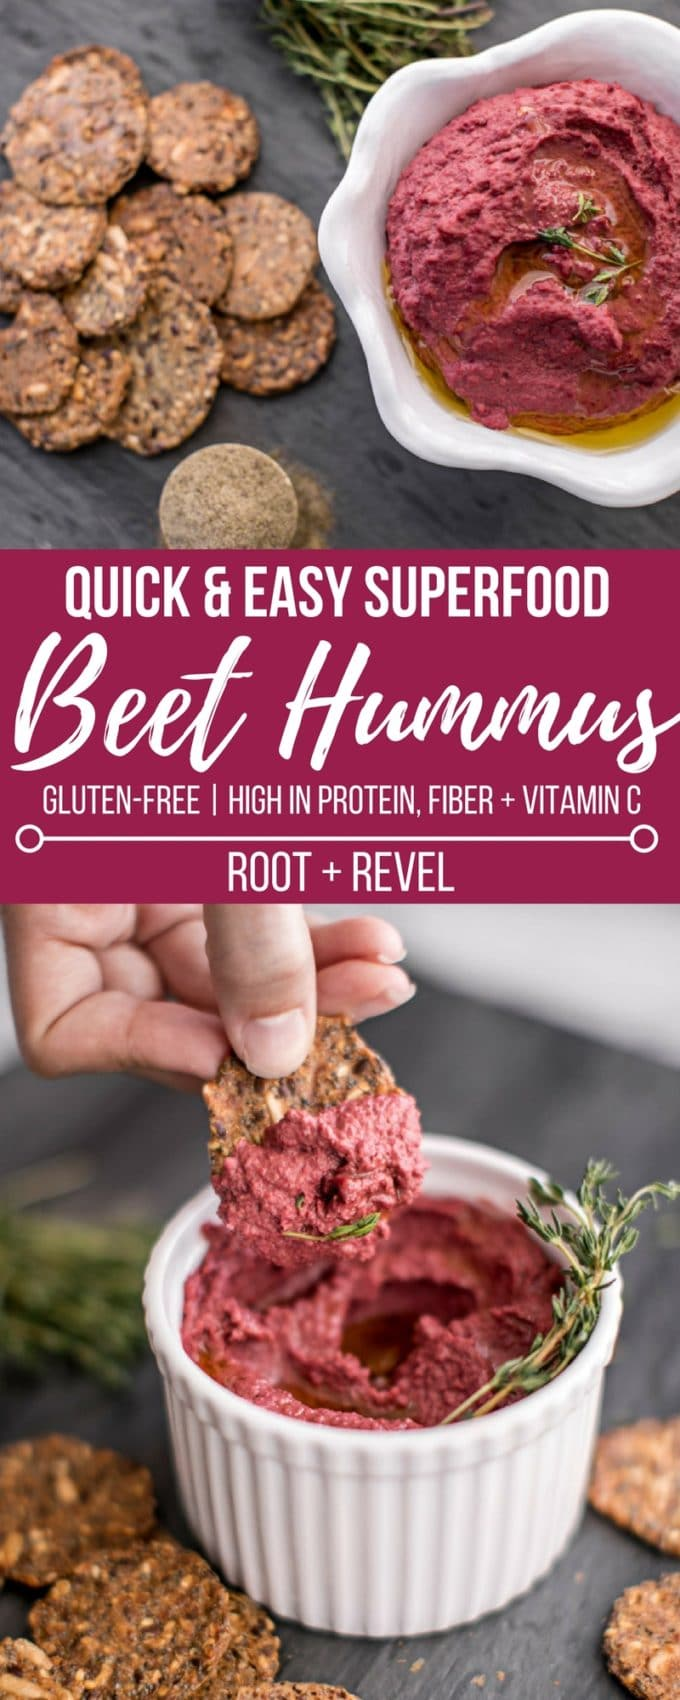 This easy Superfood Beet Hummus recipe is a vibrant and healthy twist on beet hummus, bursting with vitamins, minerals, and skin-nourishing collagen protein. This homemade hummus is quick to make with chickpeas, tahini, and beets for a delicious and clean snack.